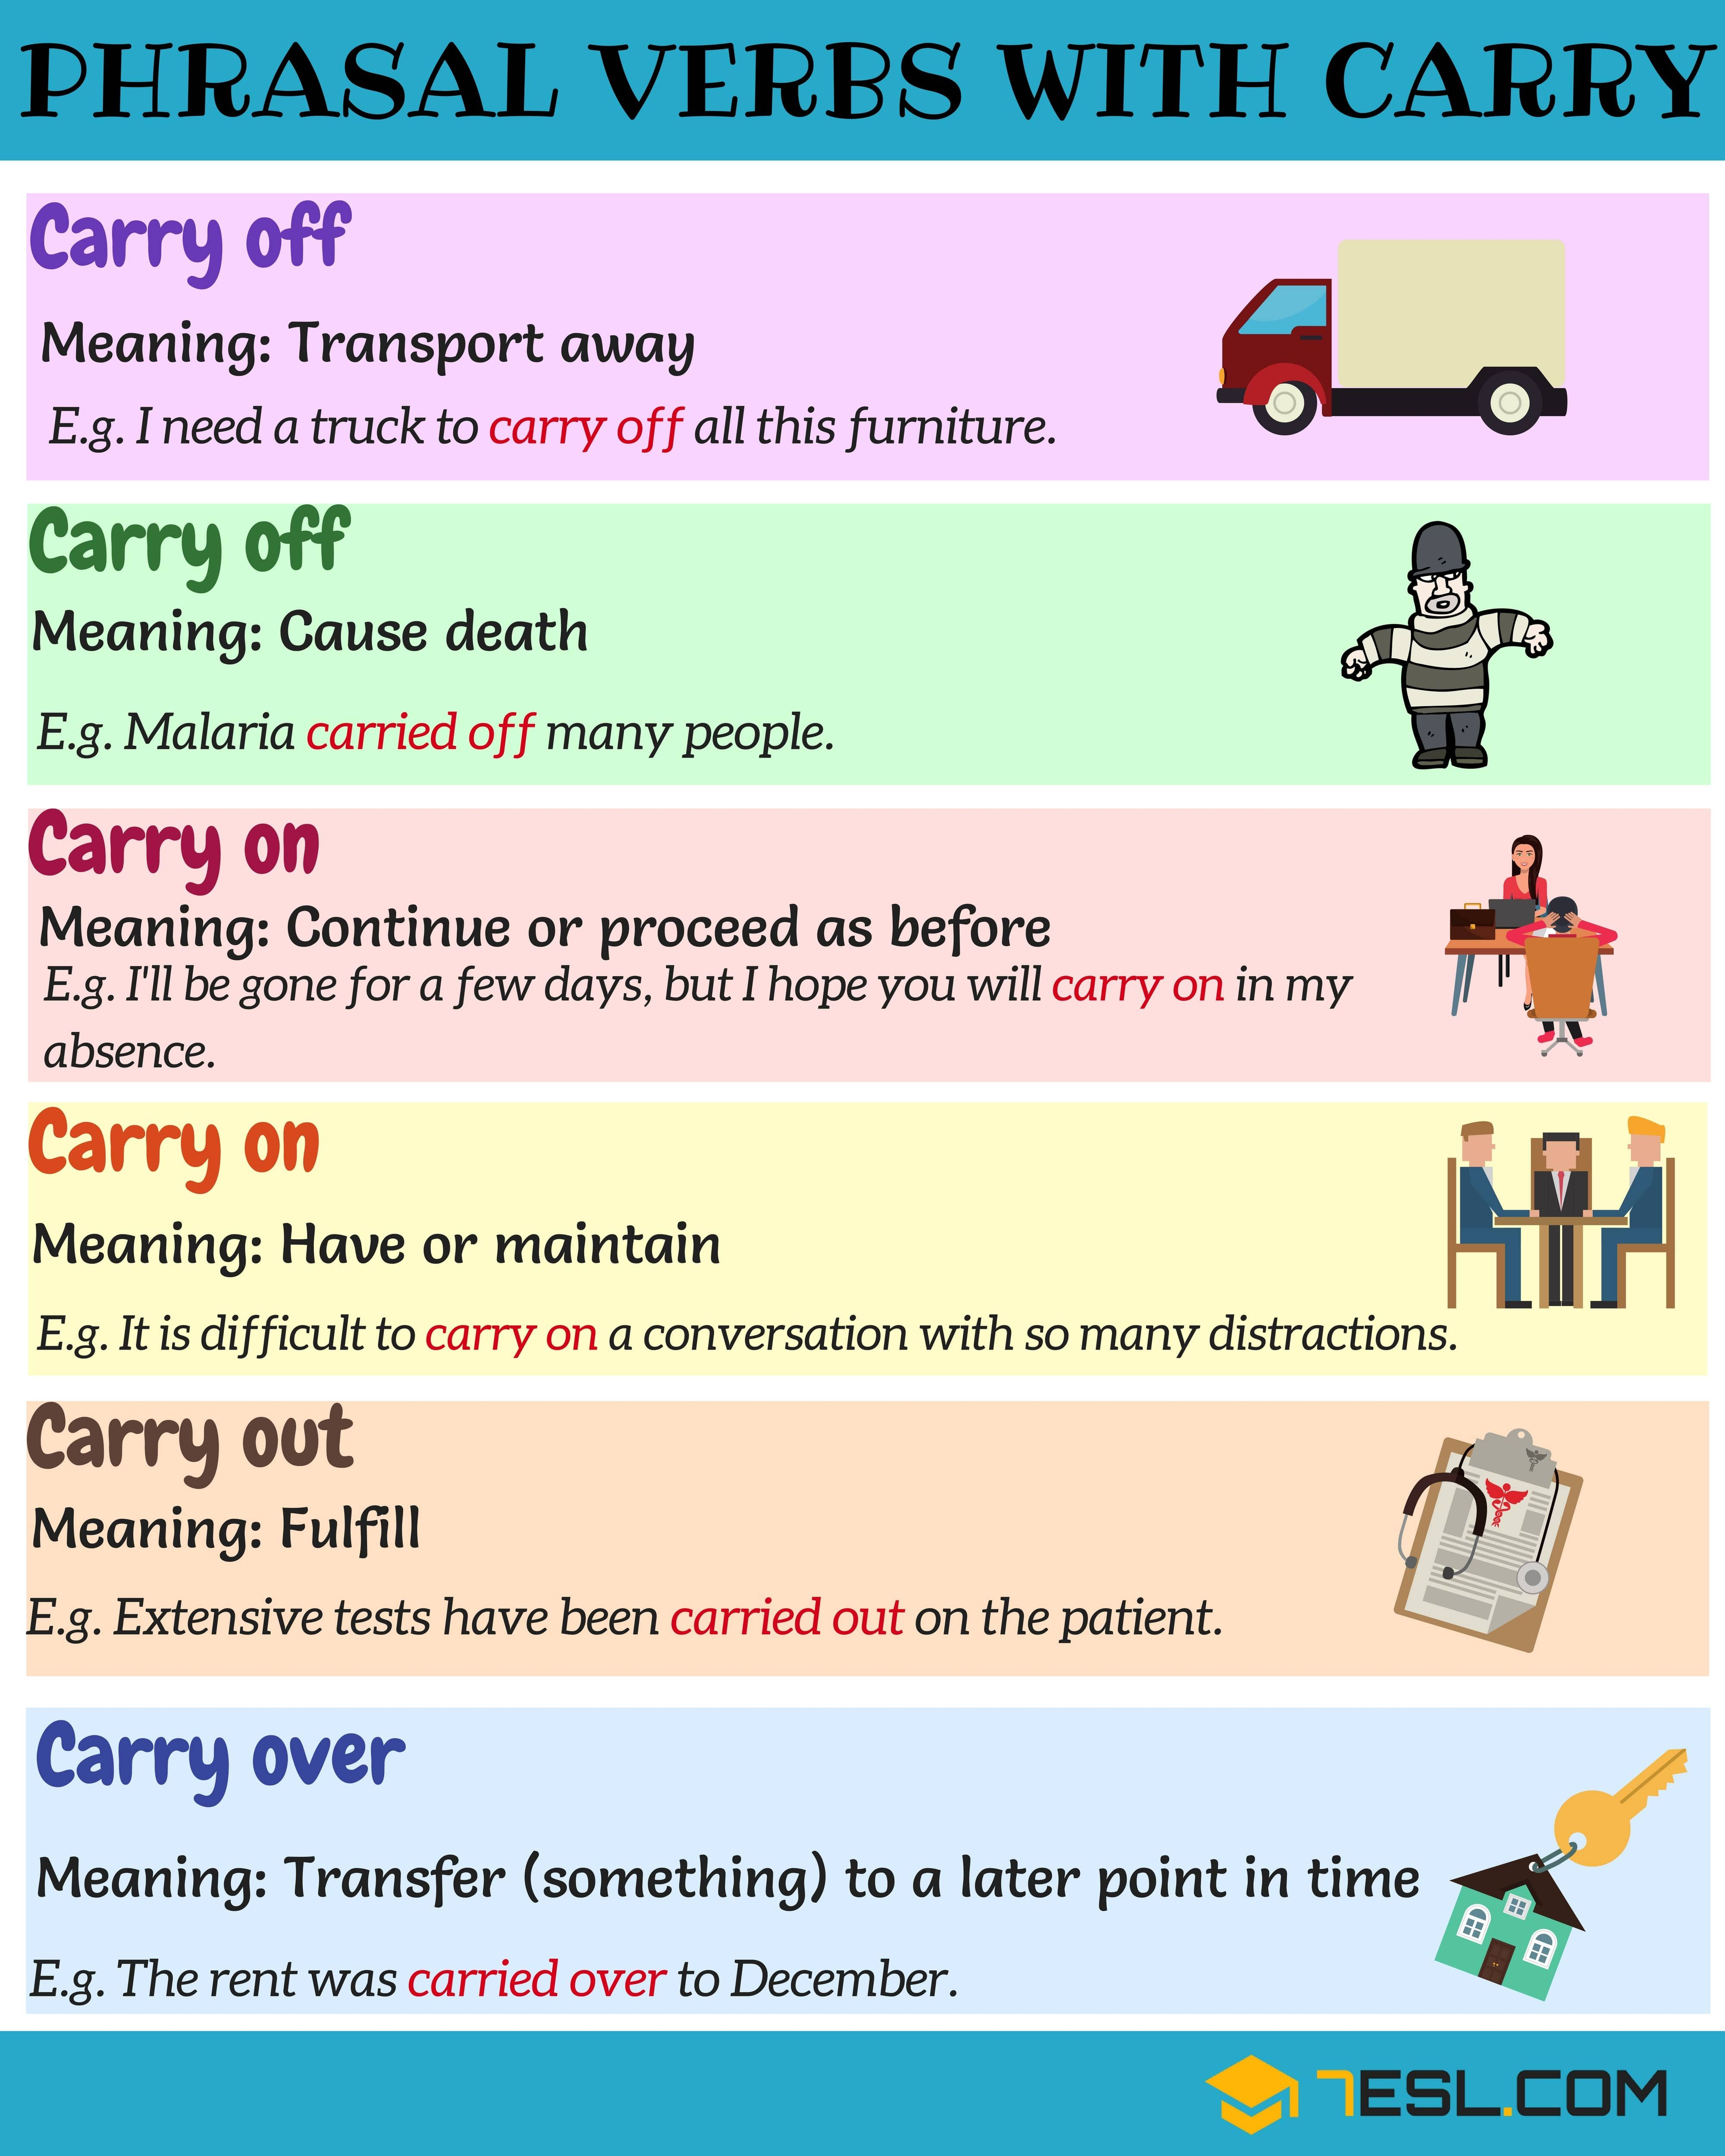 17shares Learn Common Phrasal Verbs With Carry In English